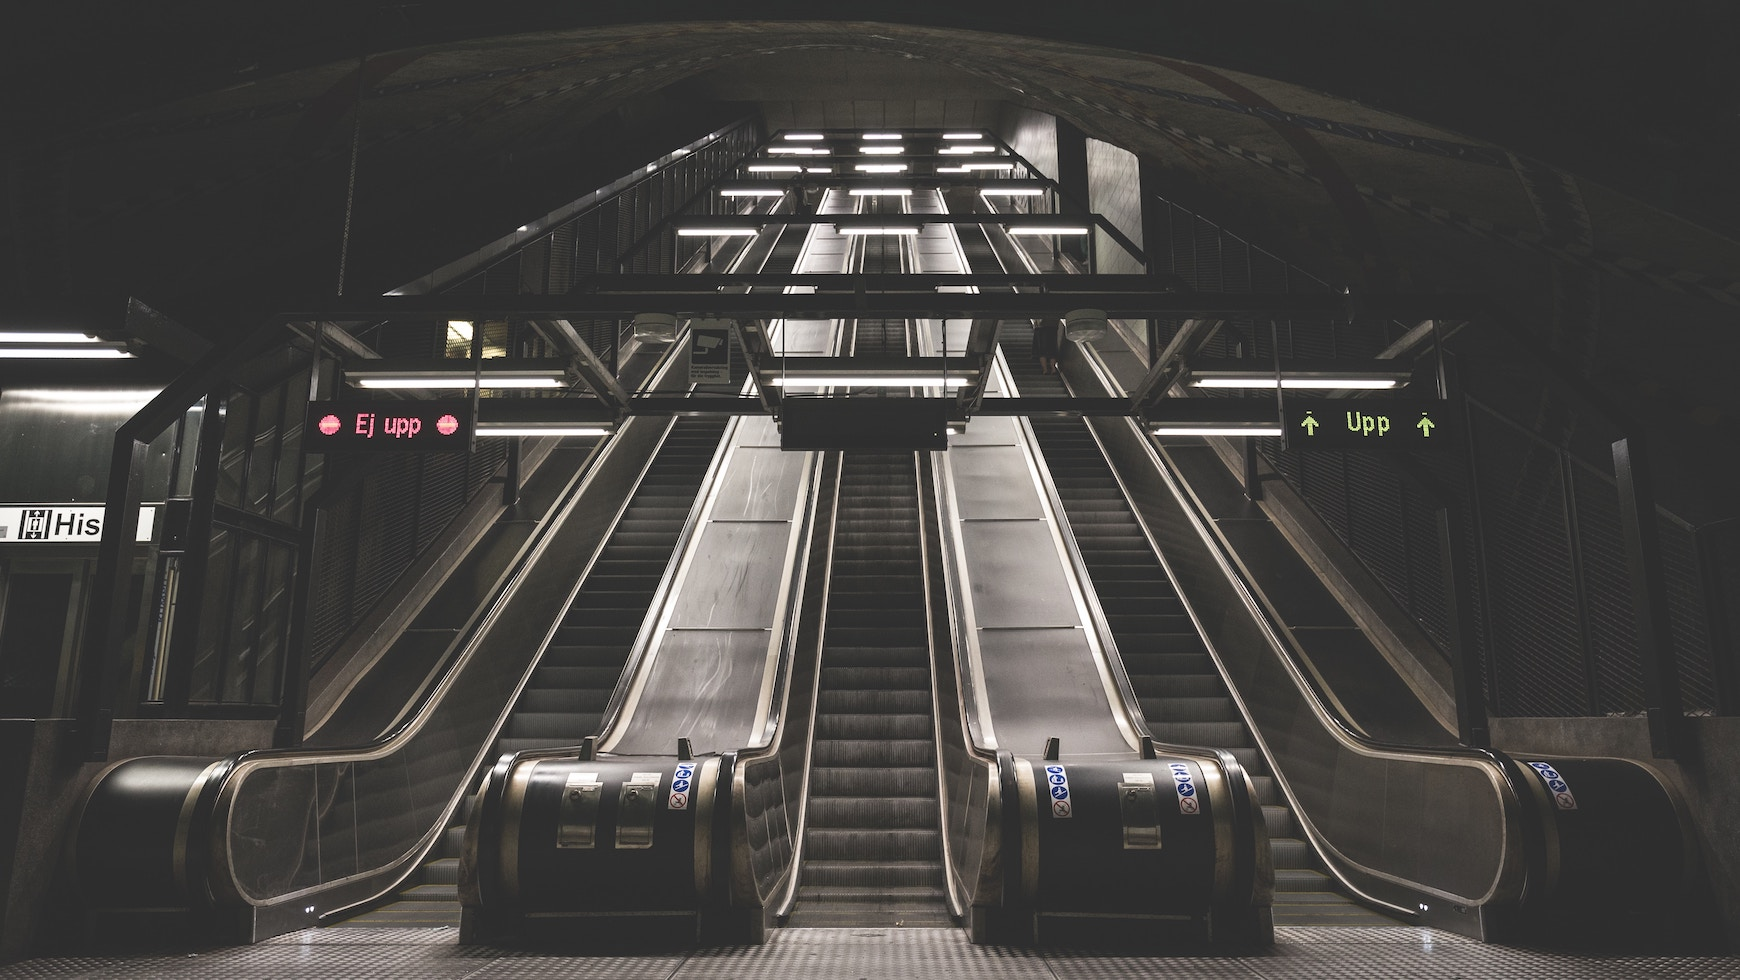 Pros-and-Cons-of-Using-Robotic-Process-Automation-for-End-to-End-Processes-Escalator